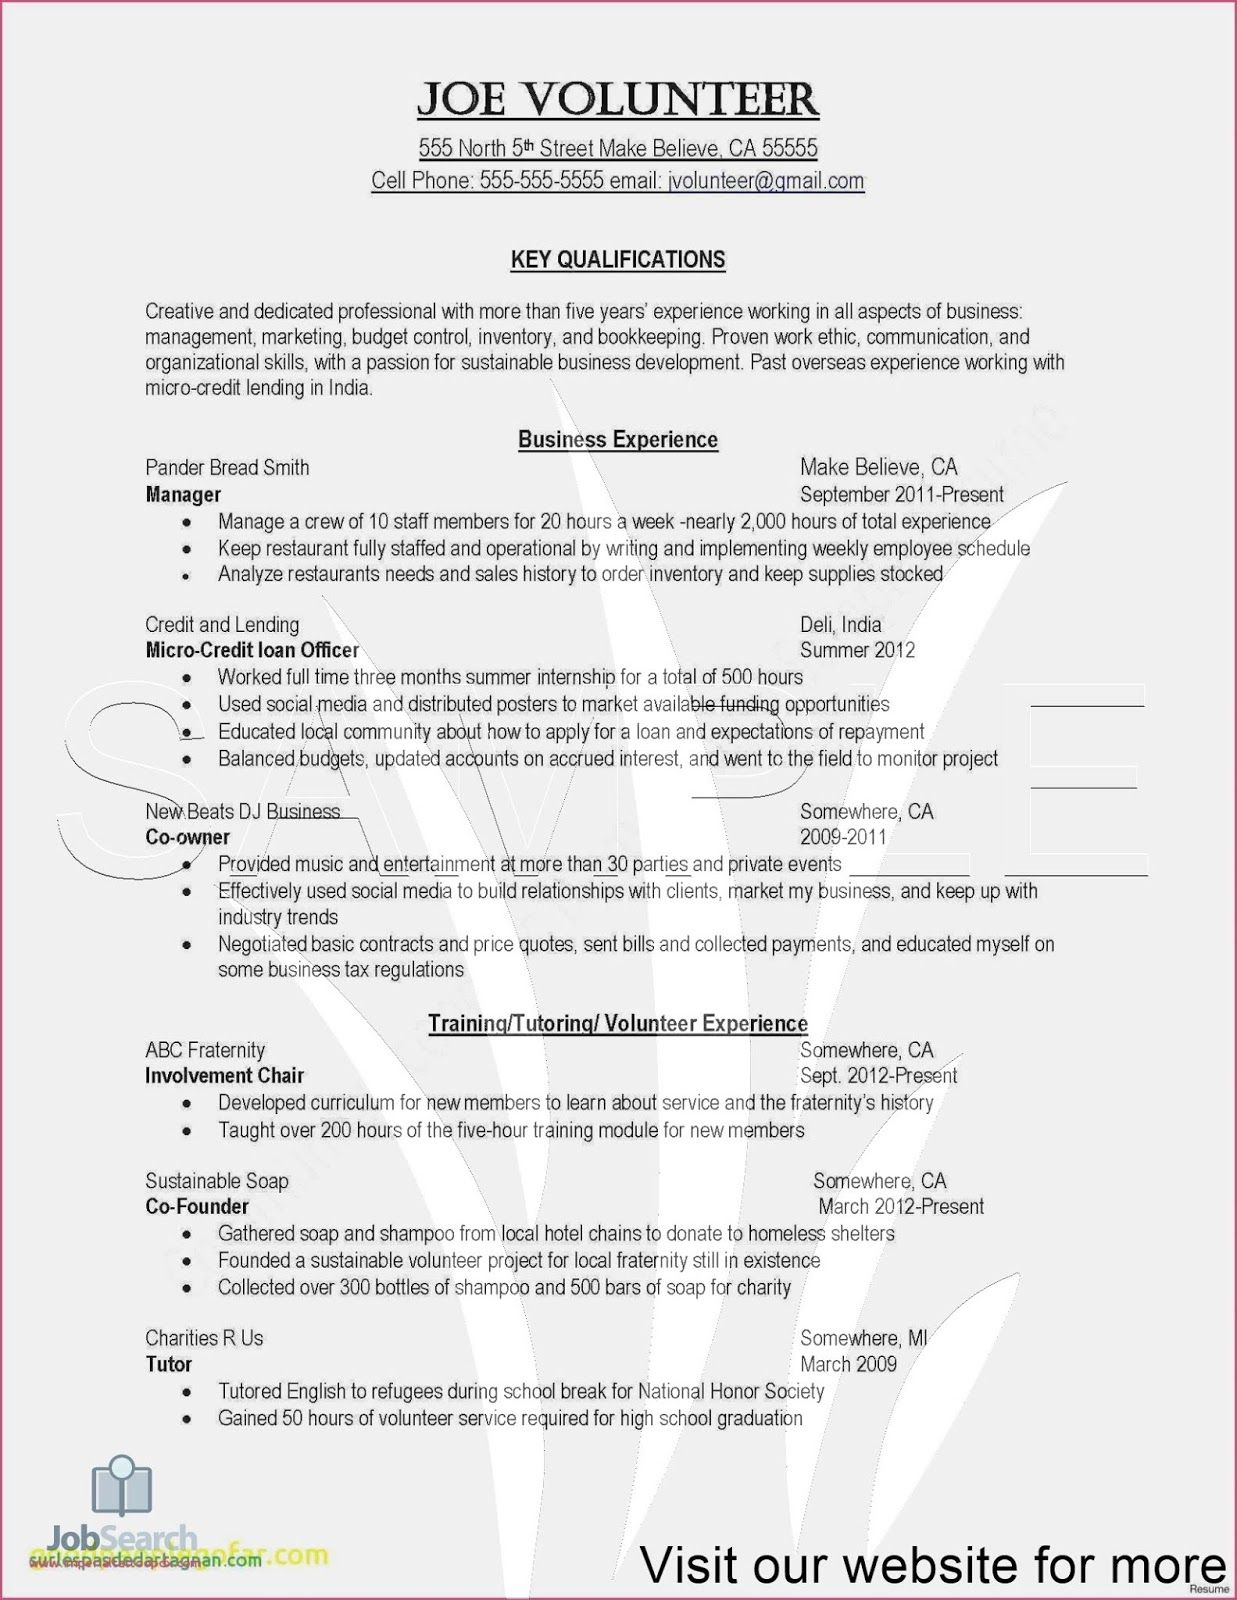 Resume Template Professional Cv Design Free 2020 Resume Template Resume Template Free Resume Template Professional